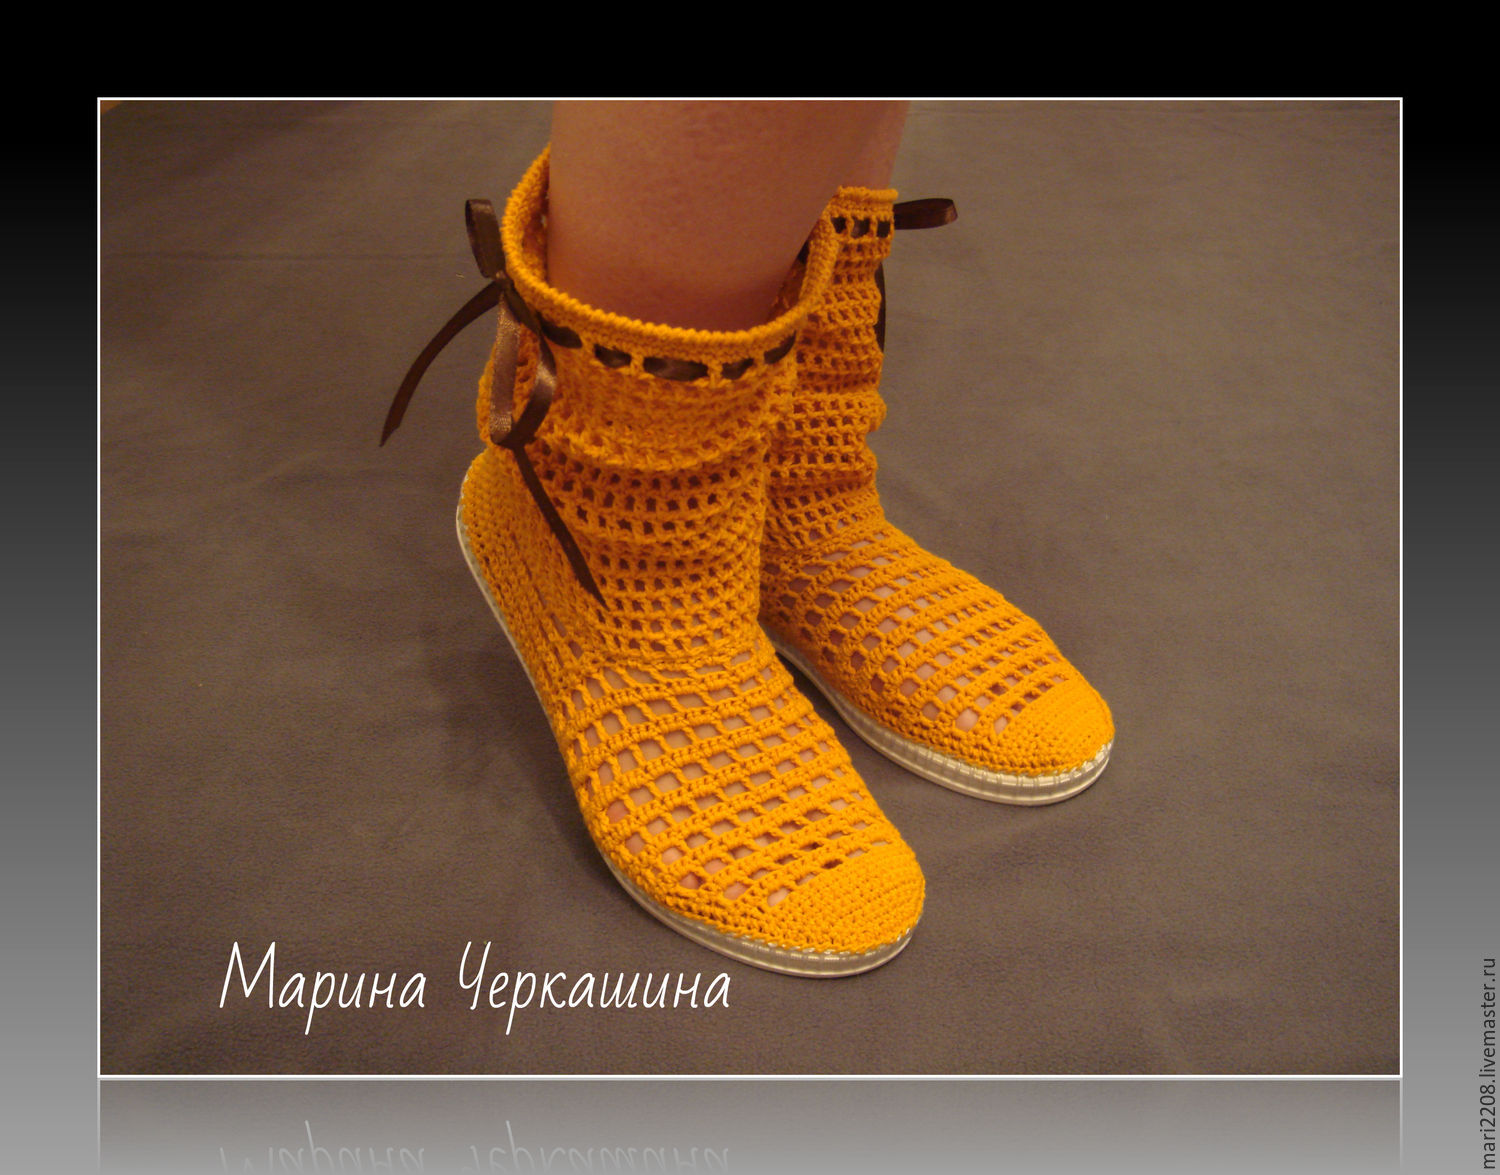 boots, knitted boots, knitting, knitting to order, transformers, shoes, handmade shoes, Marina Cherkashina, gift, girl,boots handmade shoes, summer shoes for street shoes